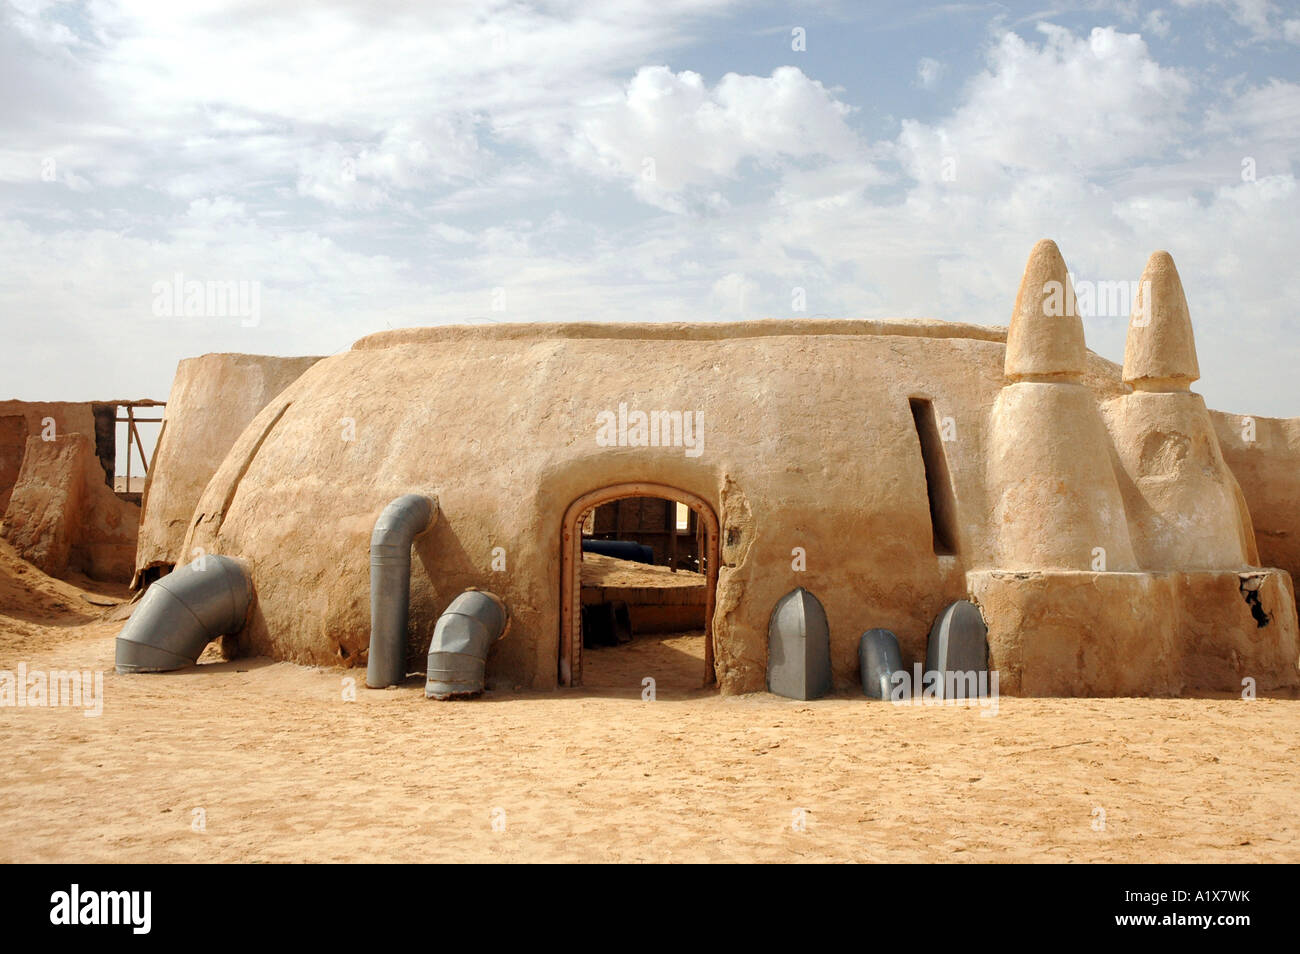 Remains Of George Lucas Star Wars Movie Set On Sahara Desert In Stock Photo Alamy